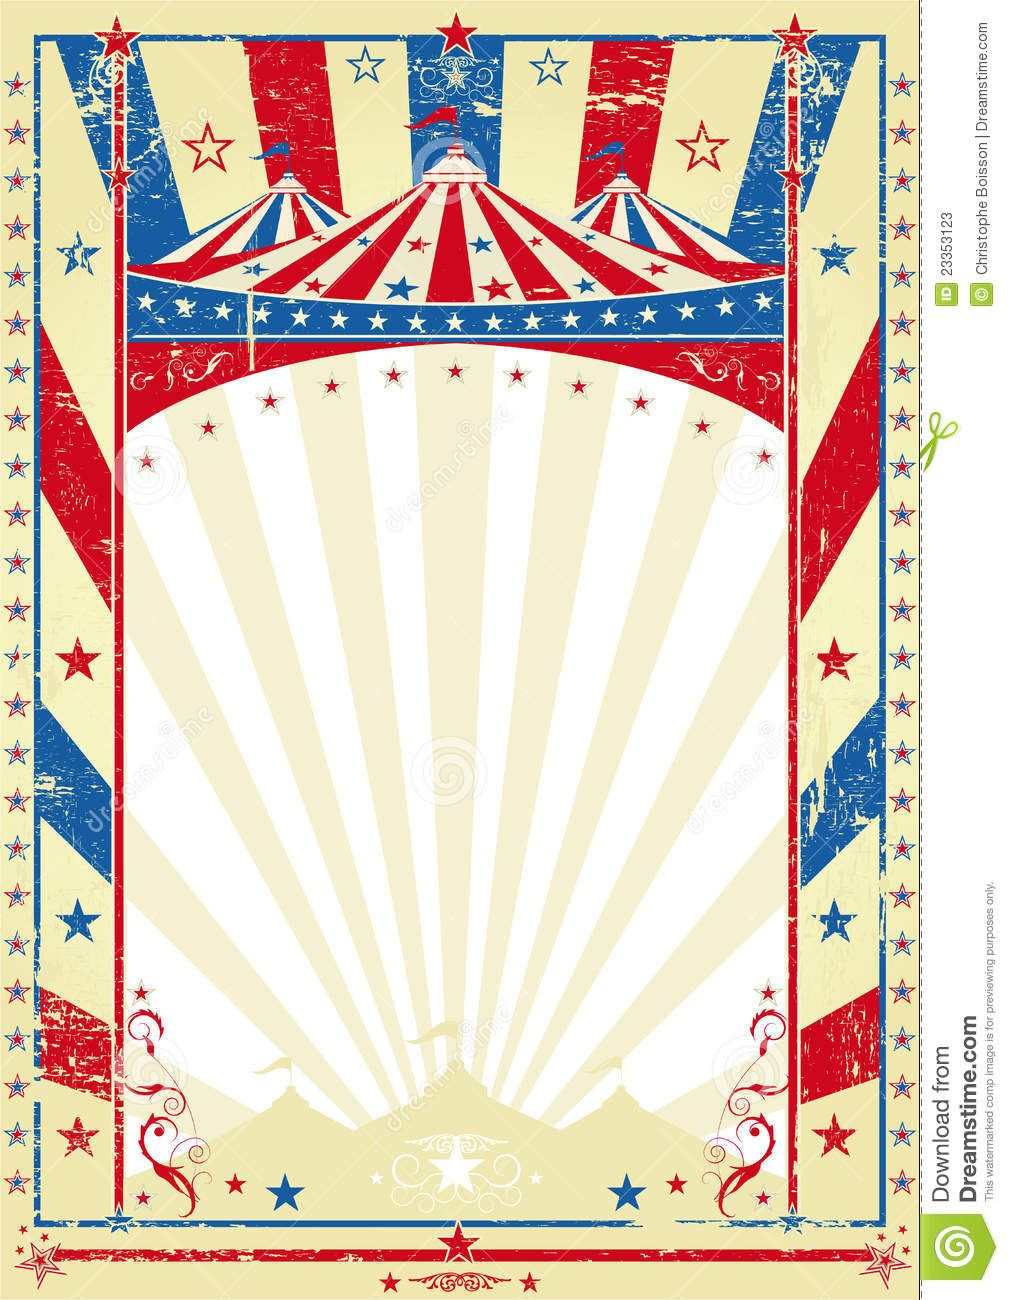 image result for free carnival clipart images [ 1009 x 1300 Pixel ]